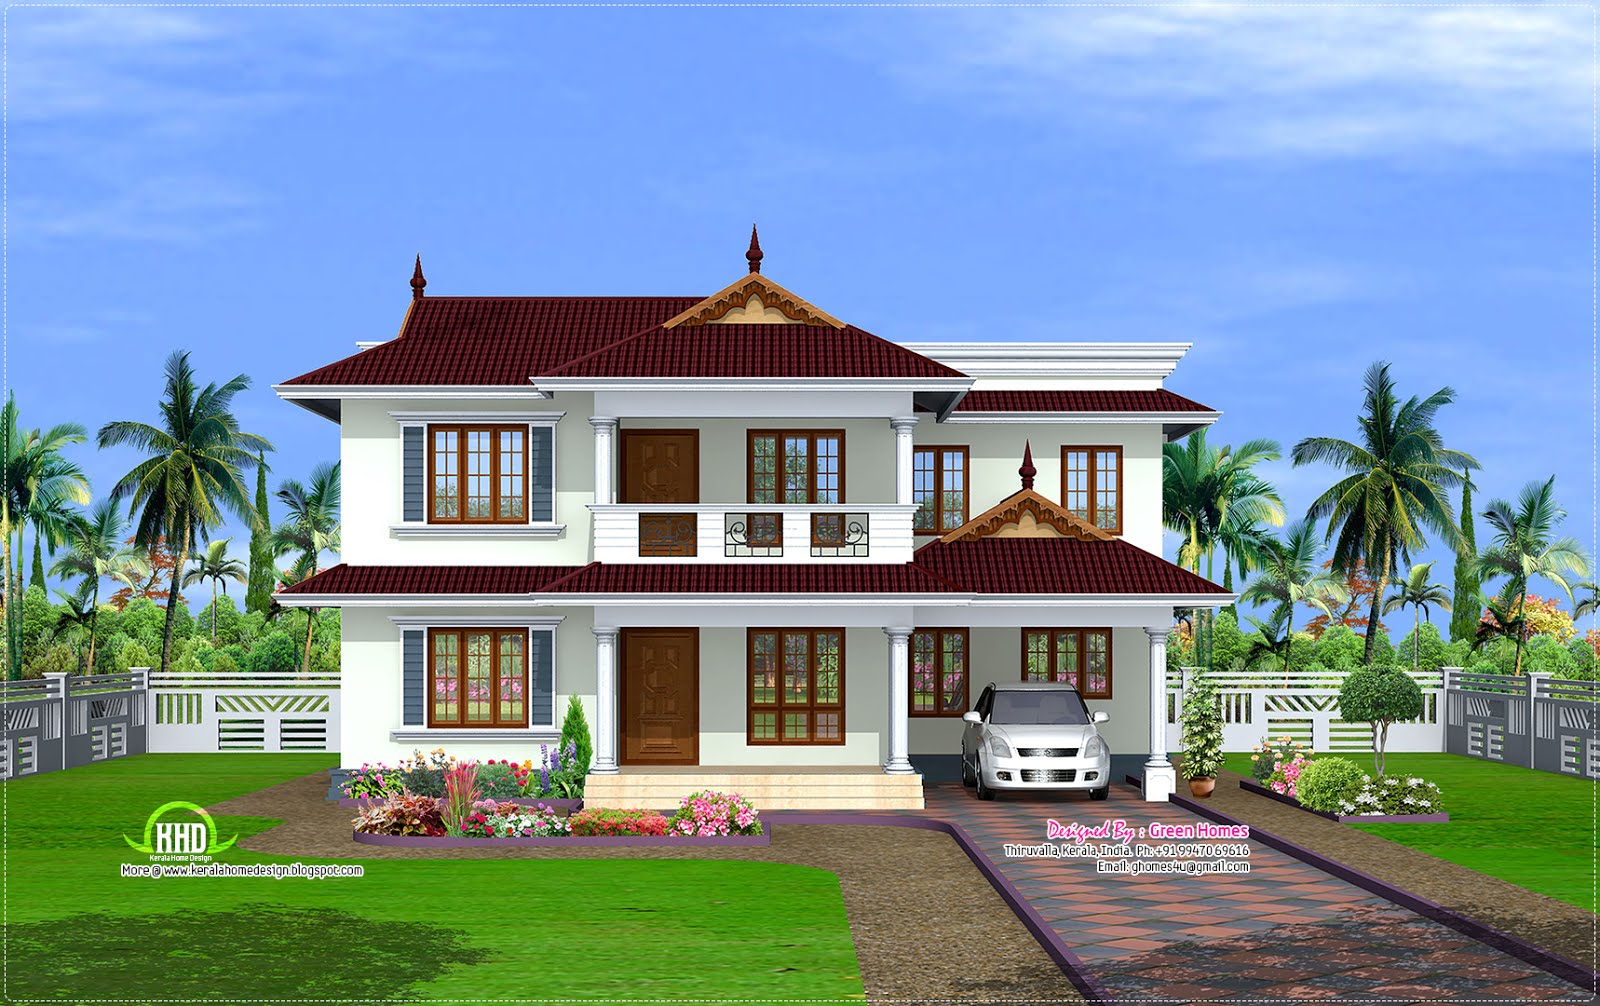 2600 kerala model house house design plans for Photos of model homes